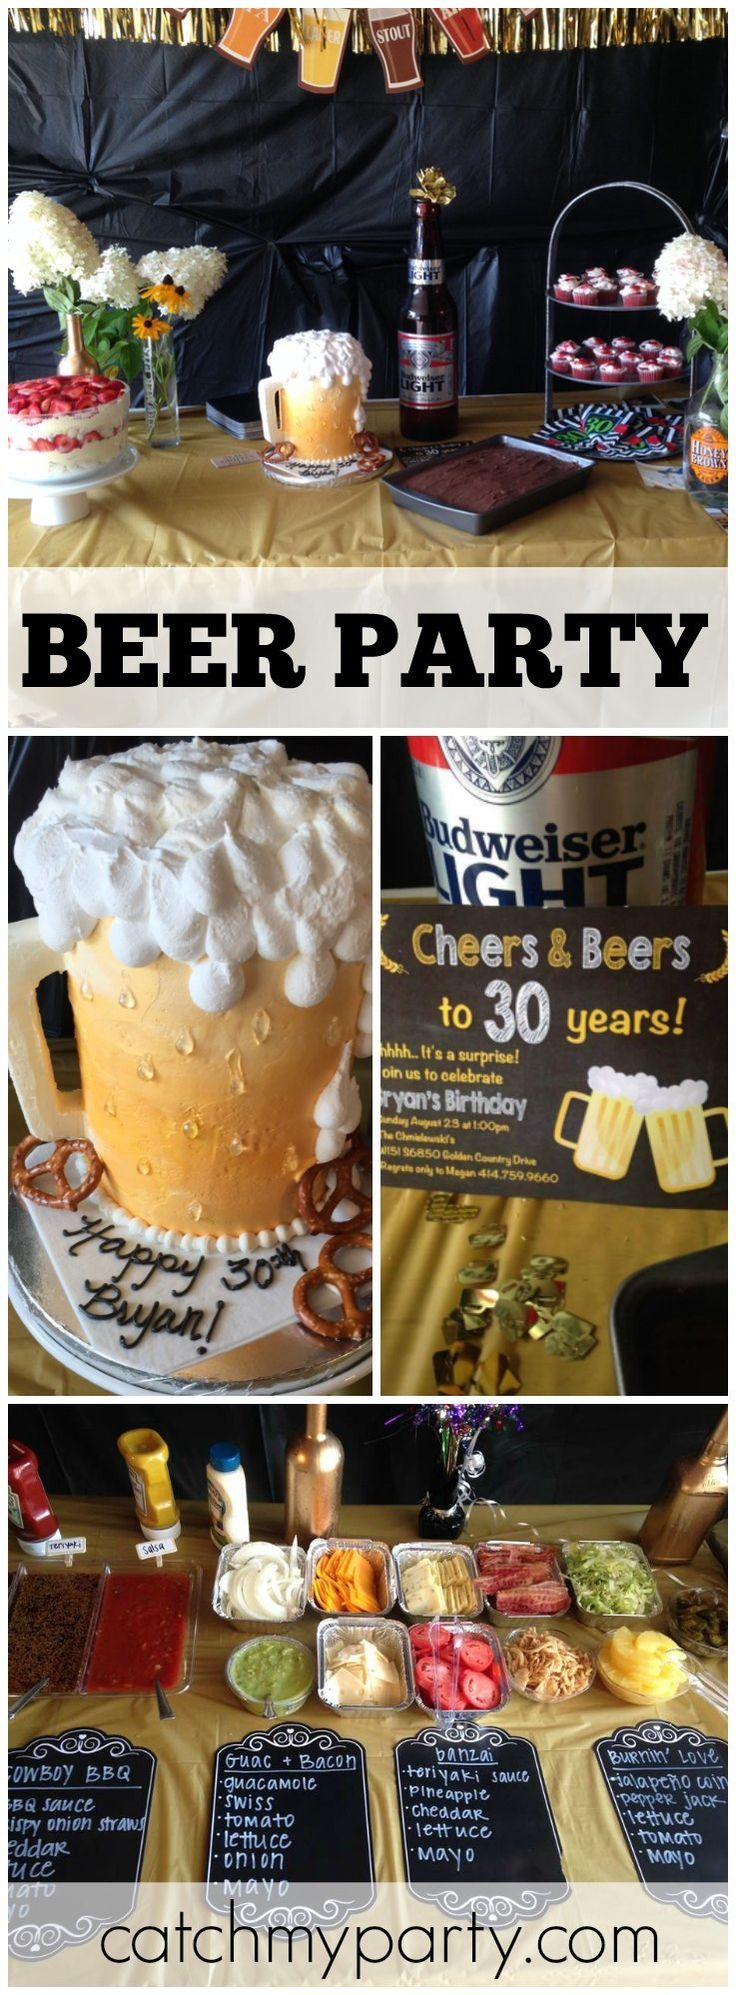 Beer is the theme for this 30th birthday party! See more party ideas at CatchMyParty.com!